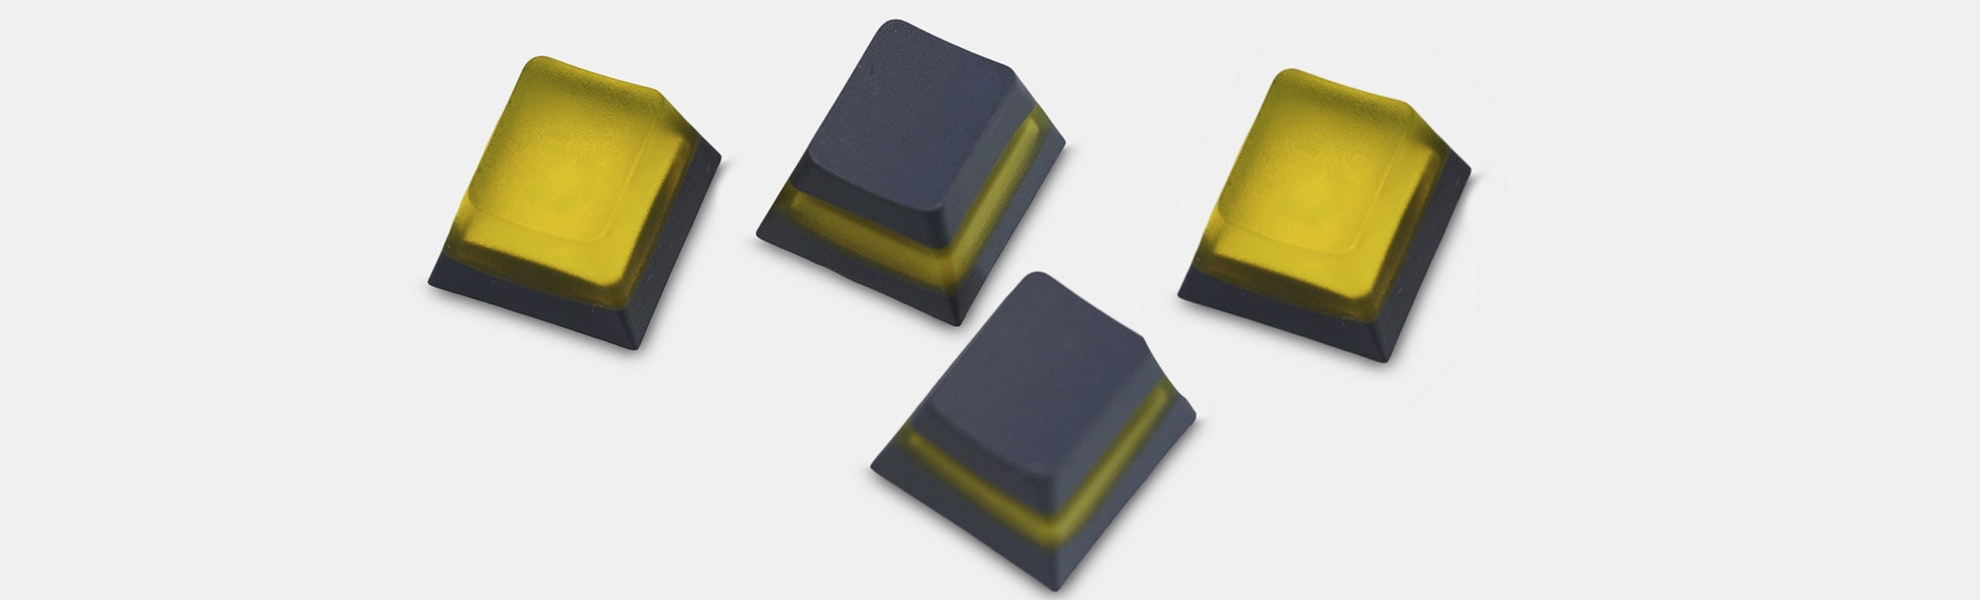 Hot Keys Project: Zambumon Serika Keycaps (2-Pack)